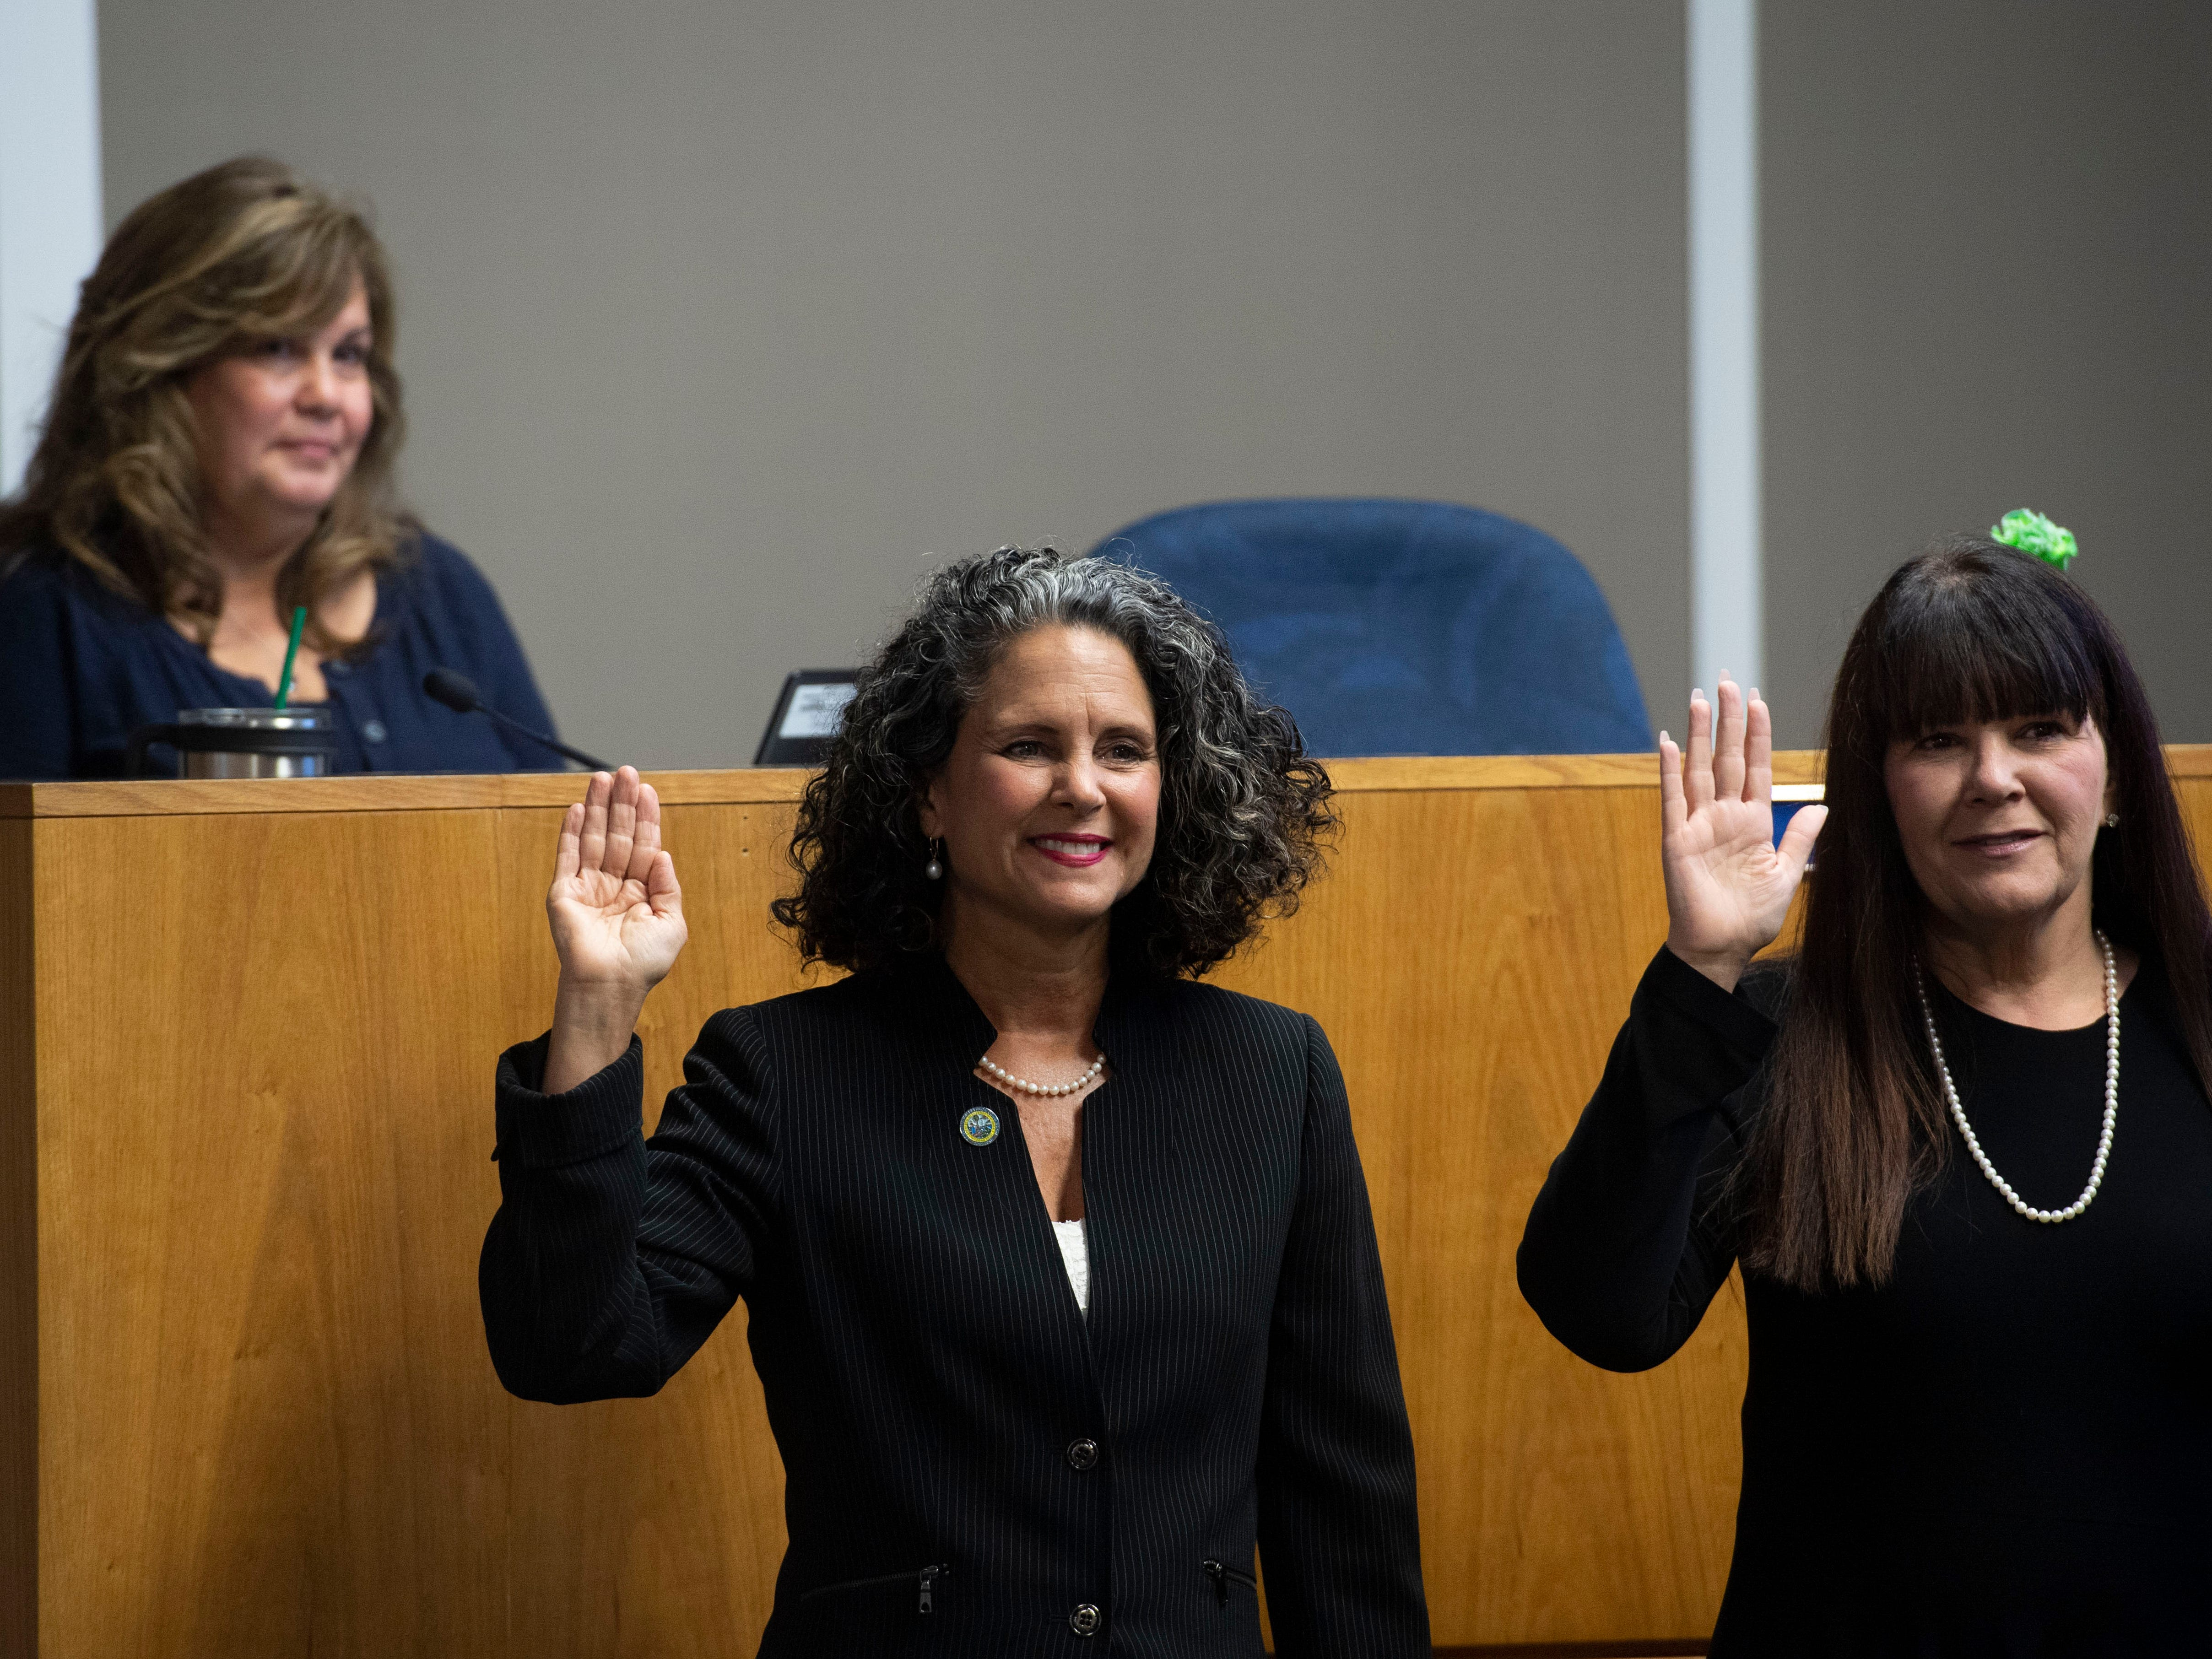 Jacqui Thurlow-Lippisch (left) and Cheryl Meads are amongst the several new members of the South Florida Water Management District board taking the oath of office Thursday, March 14, 2019, at the board offices in West Palm Beach. Gov. Ron DeSantis appointed Thurlow-Lippish, a SewallÕs Point resident, last month during a news conference at the Florida Oceanographic Coastal Center.